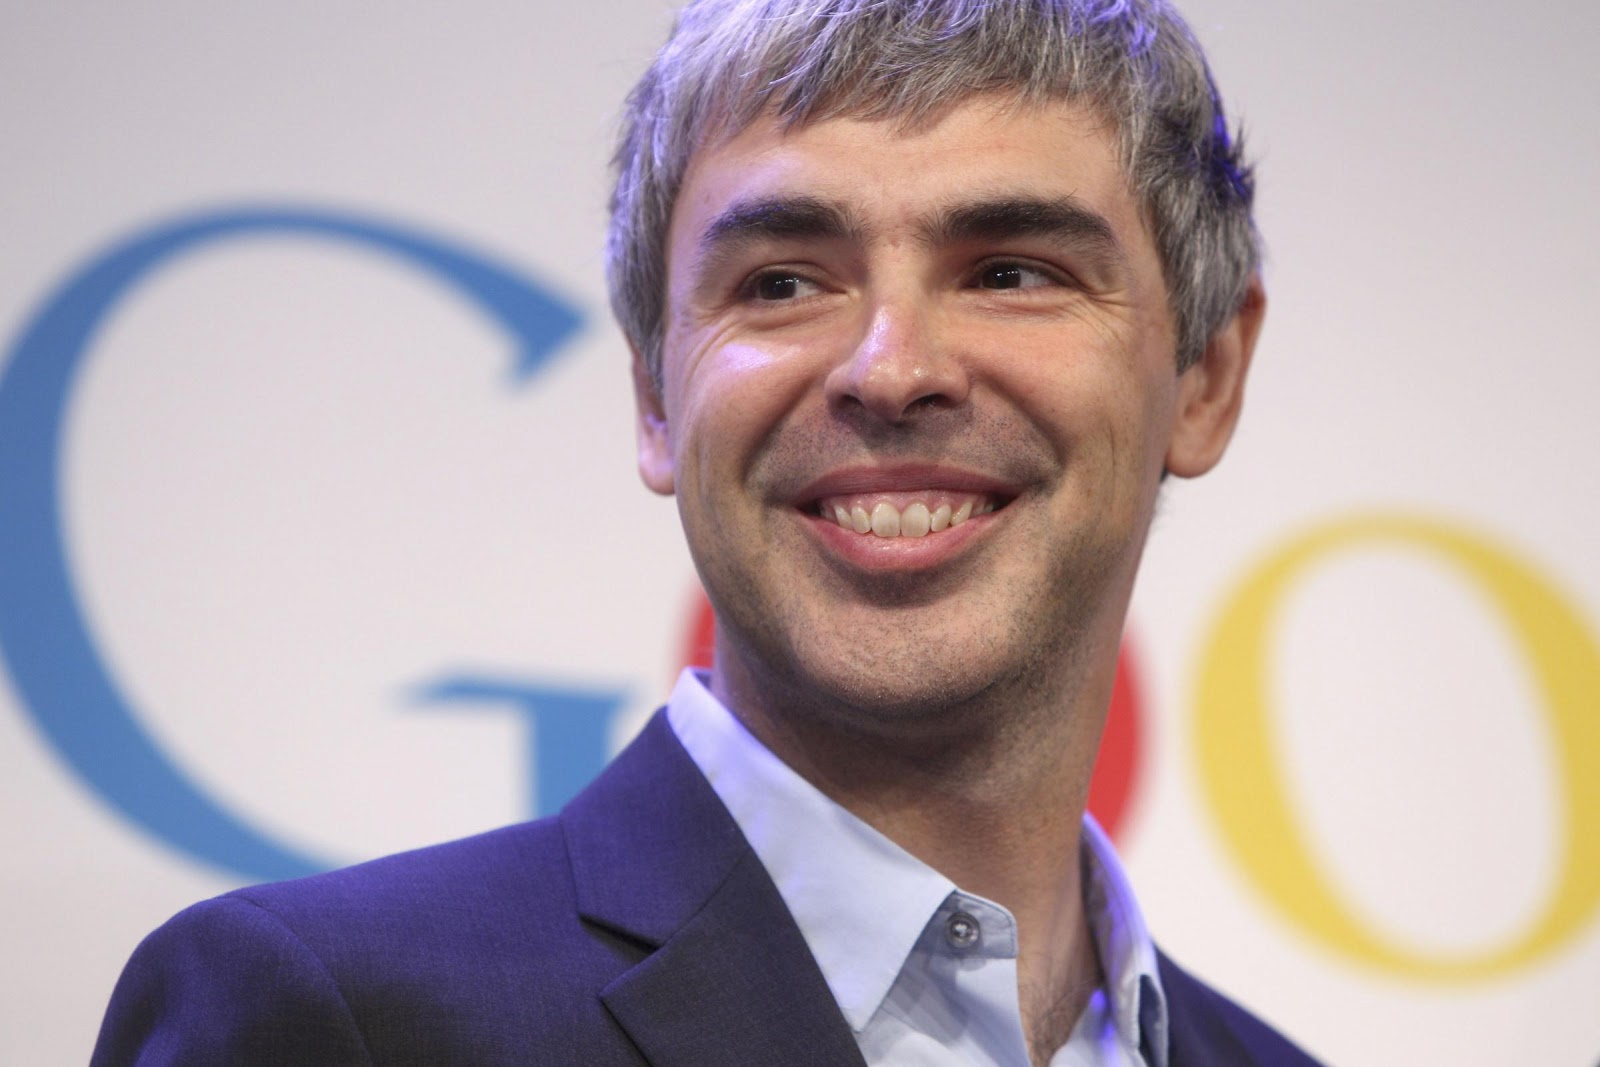 8 Awesome Facts about Larry Page and Sergey Brin.